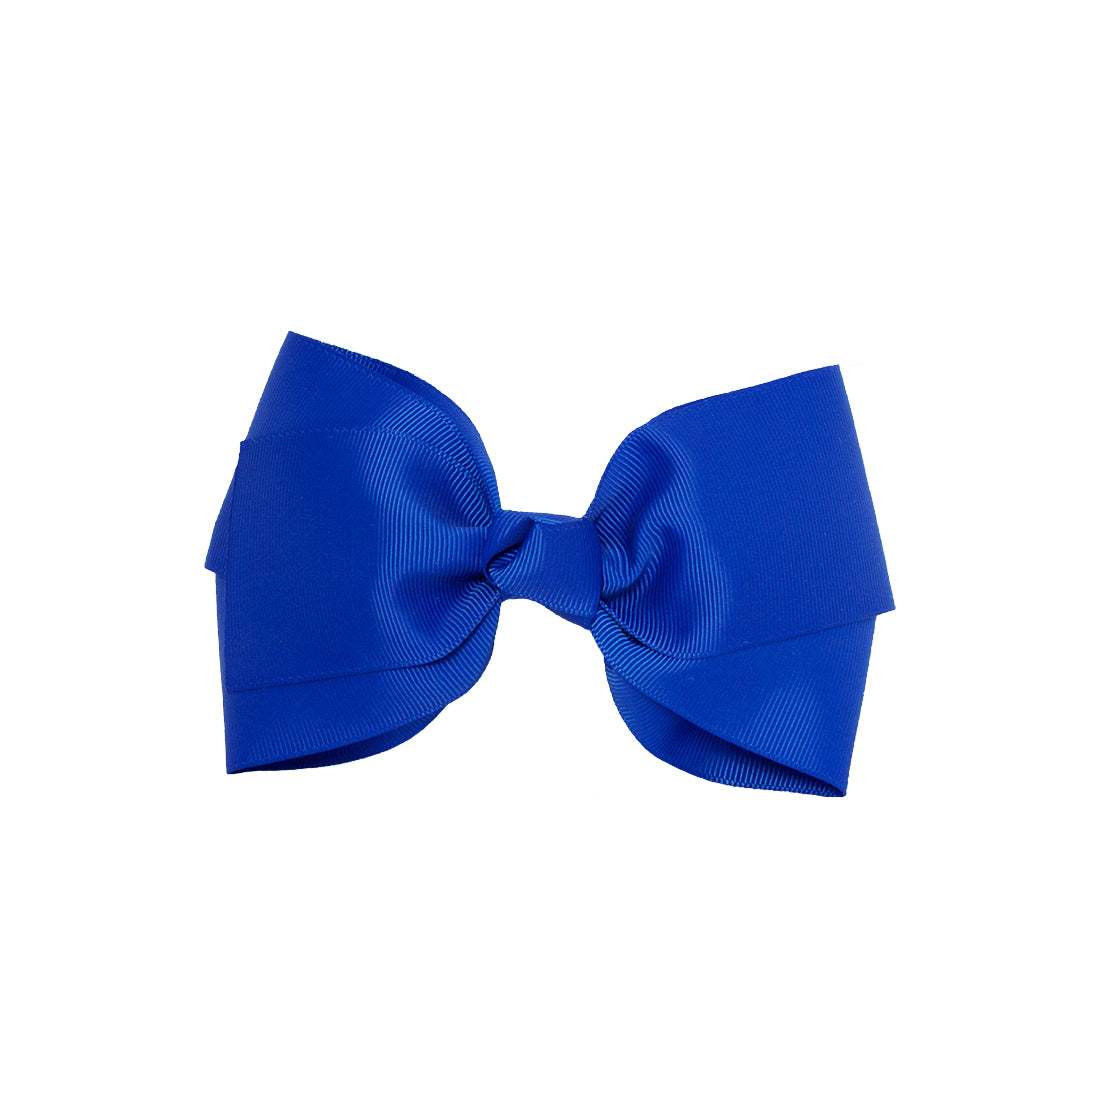 Mia® Spirit Grosgrain Ribbon Bow Barrette - large size - royal blue color - front view - designed by #MiaKaminski of Mia Beauty